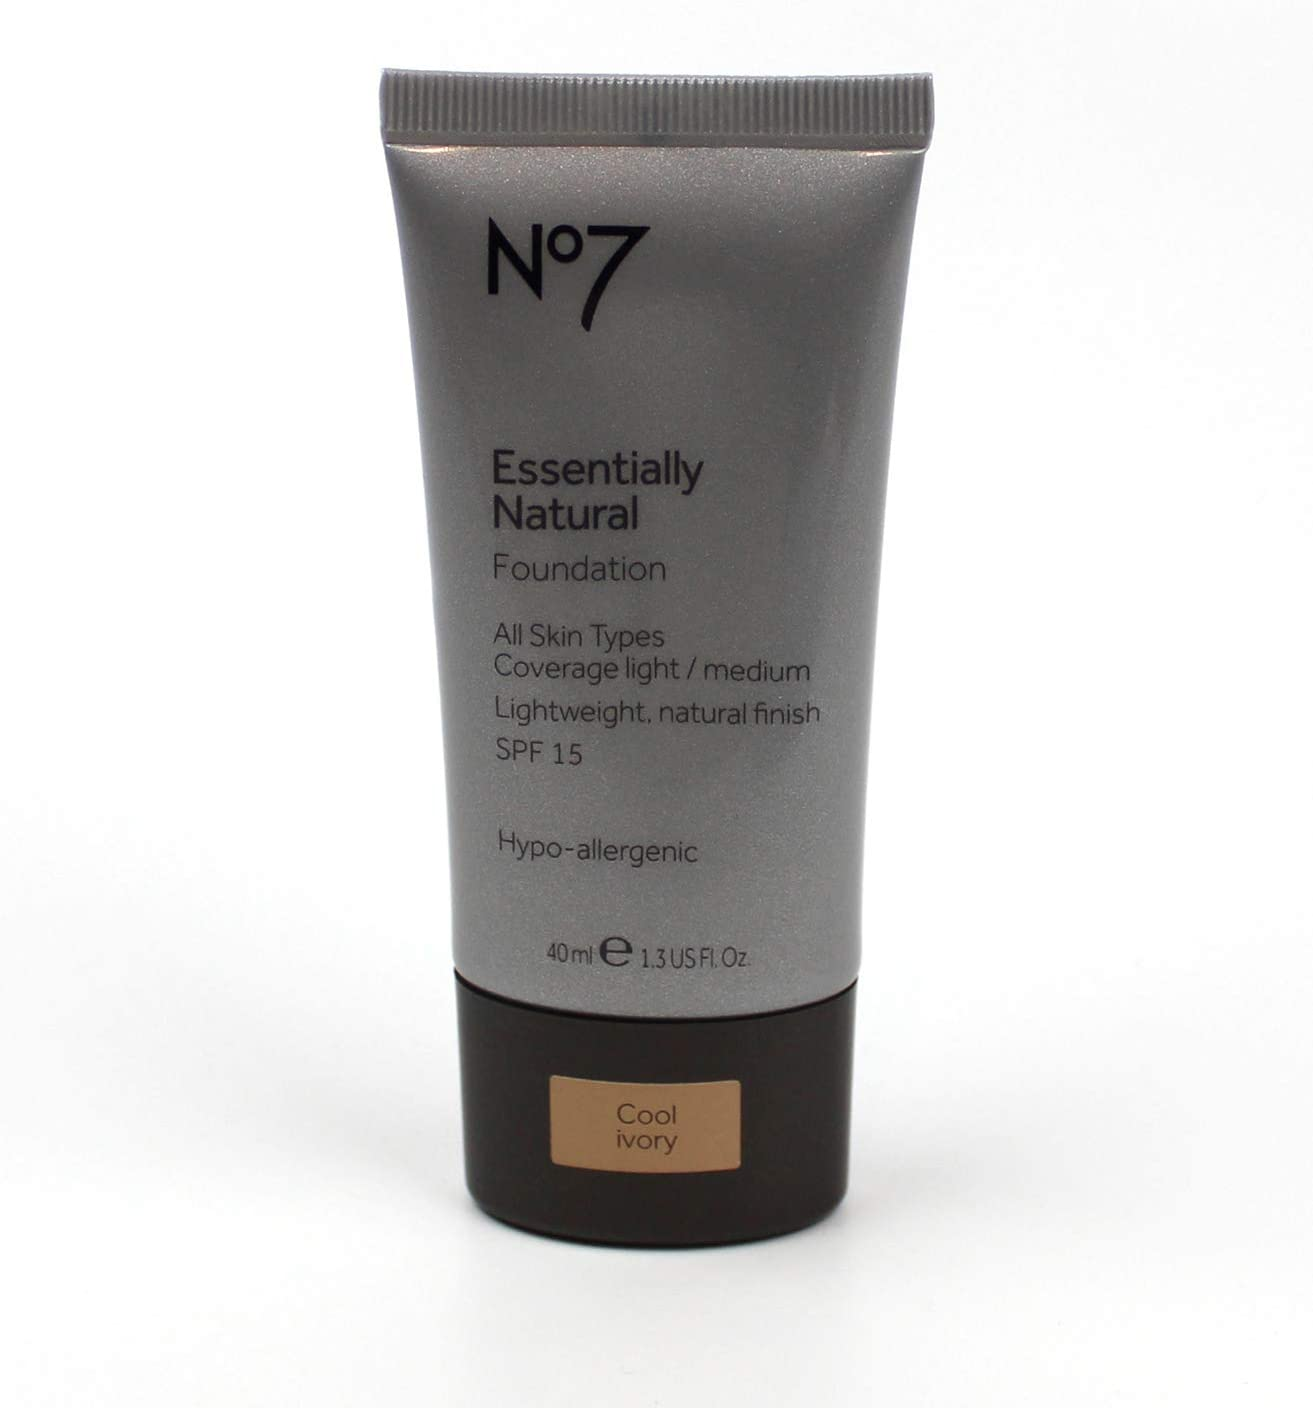 No7 Essentially Natural Foundation Cool Ivory